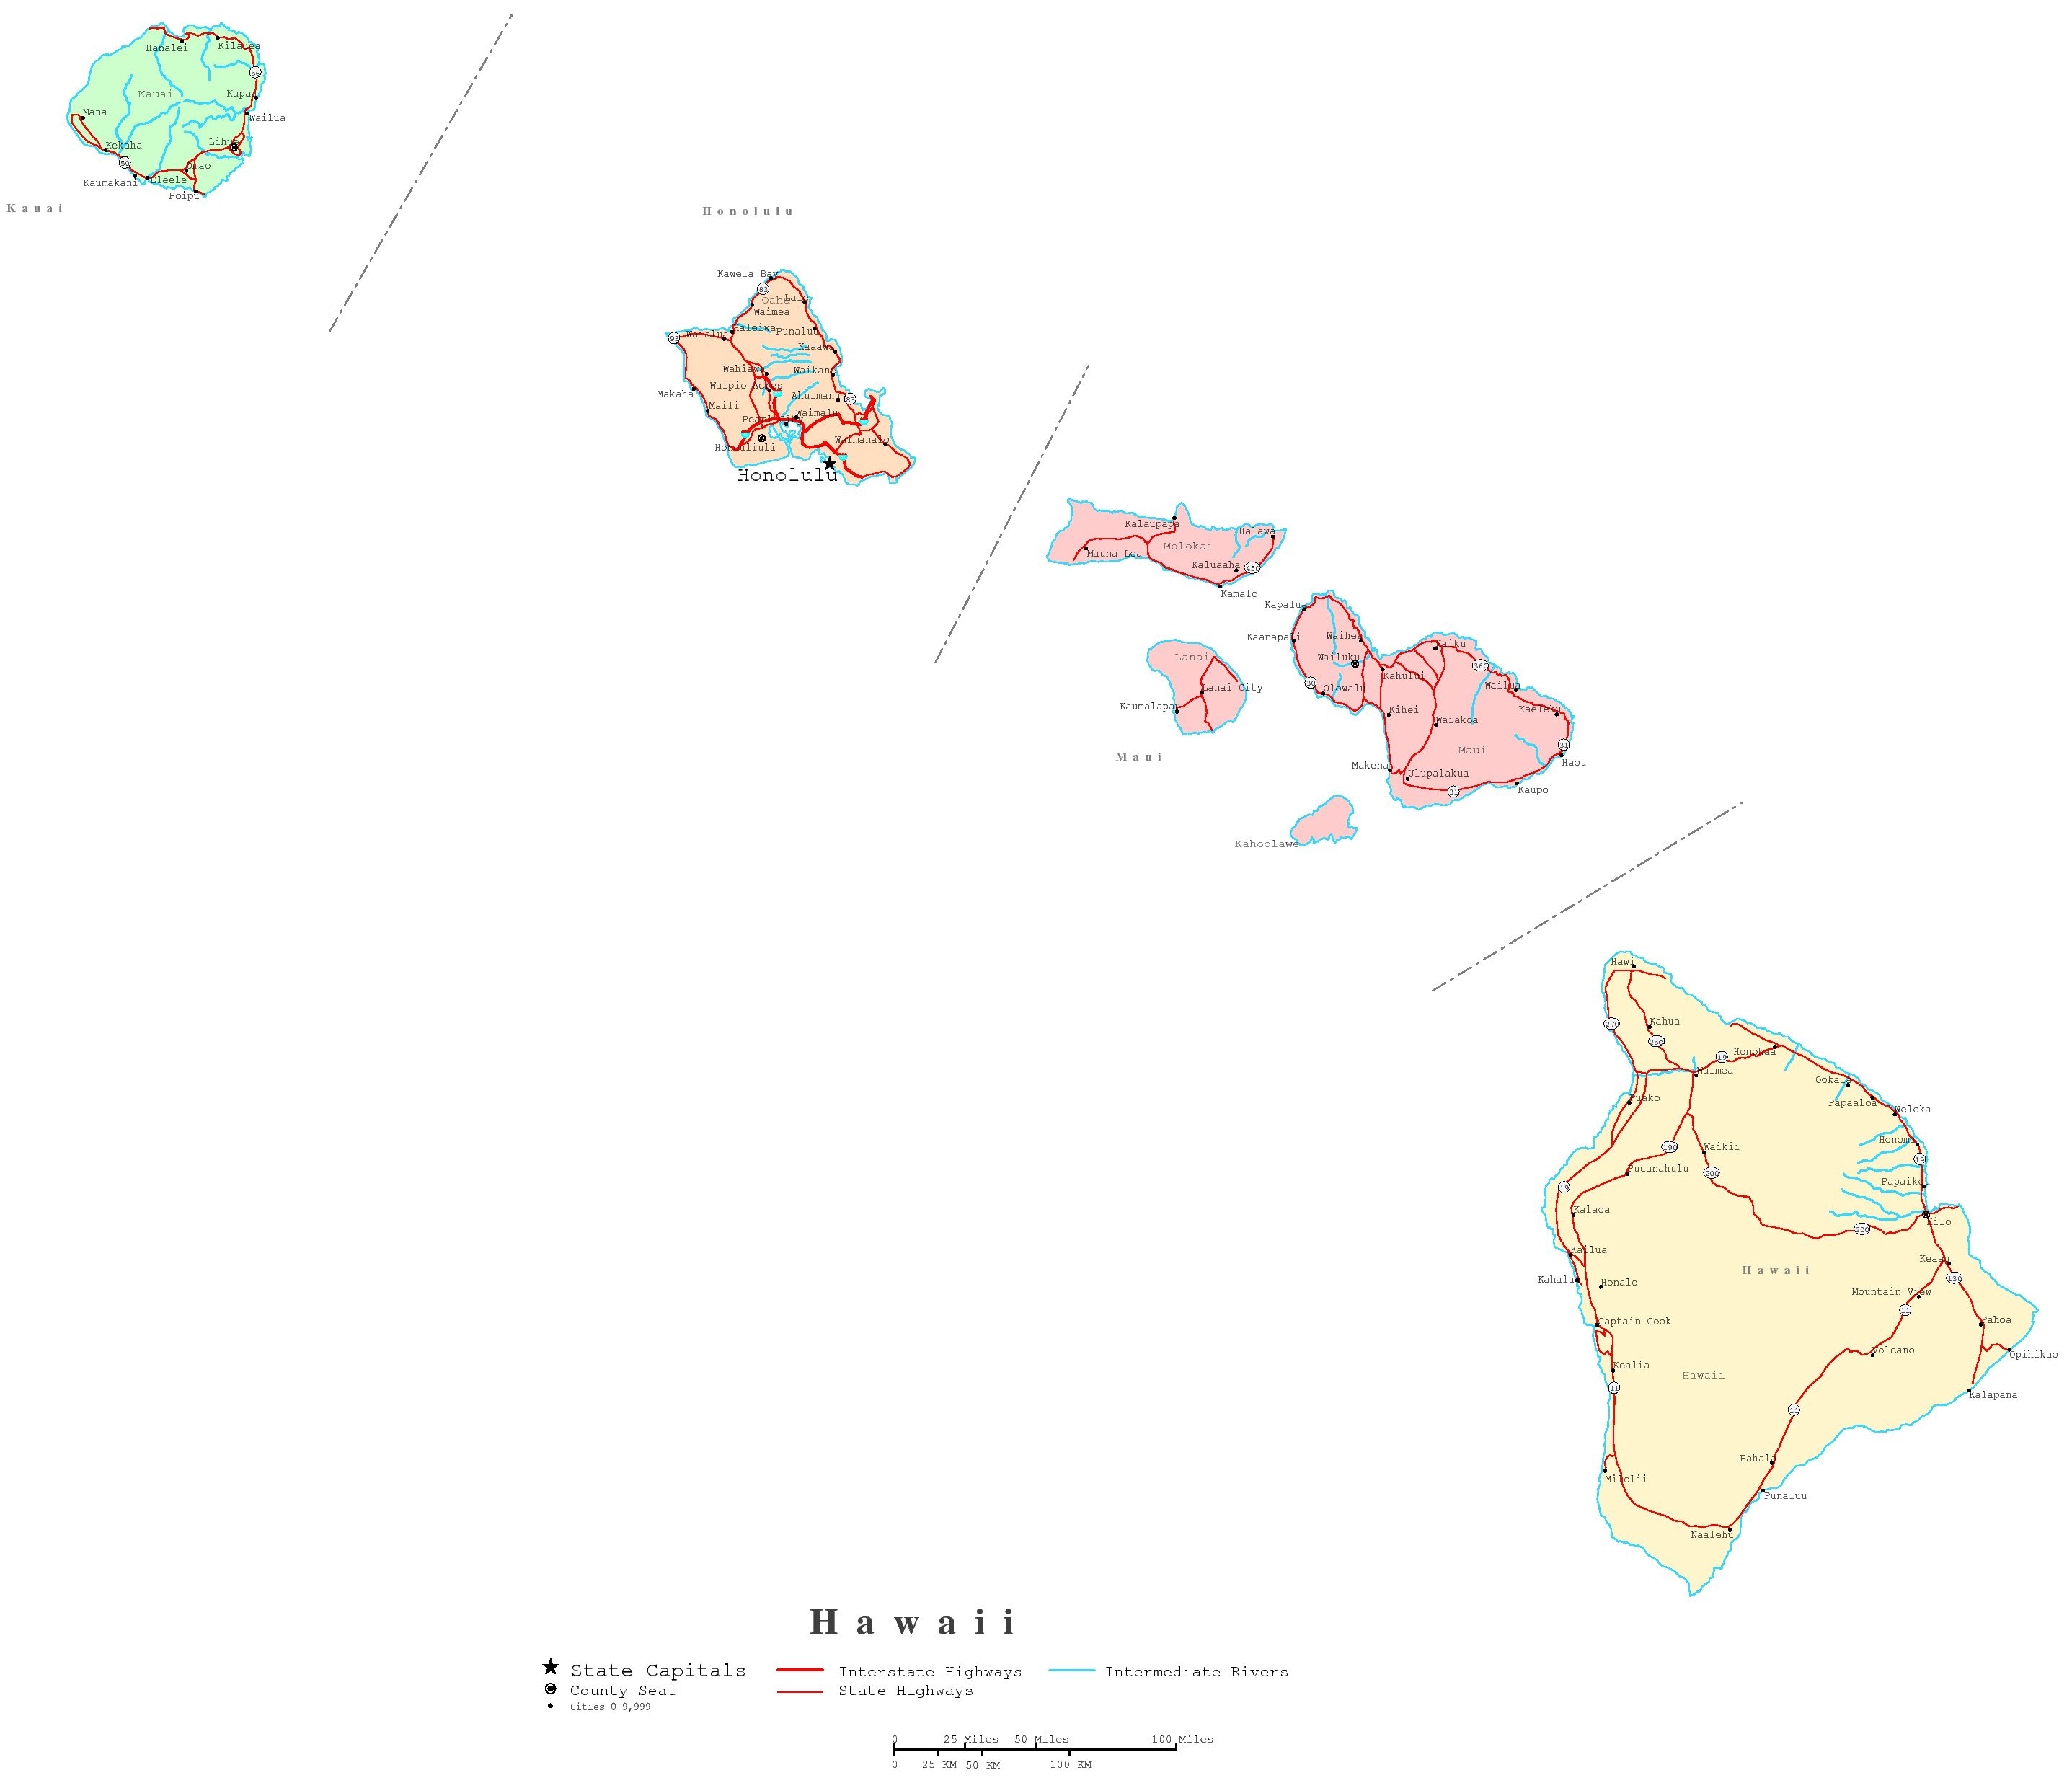 Printable map original high resolution image printable hawaii map gumiabroncs Gallery